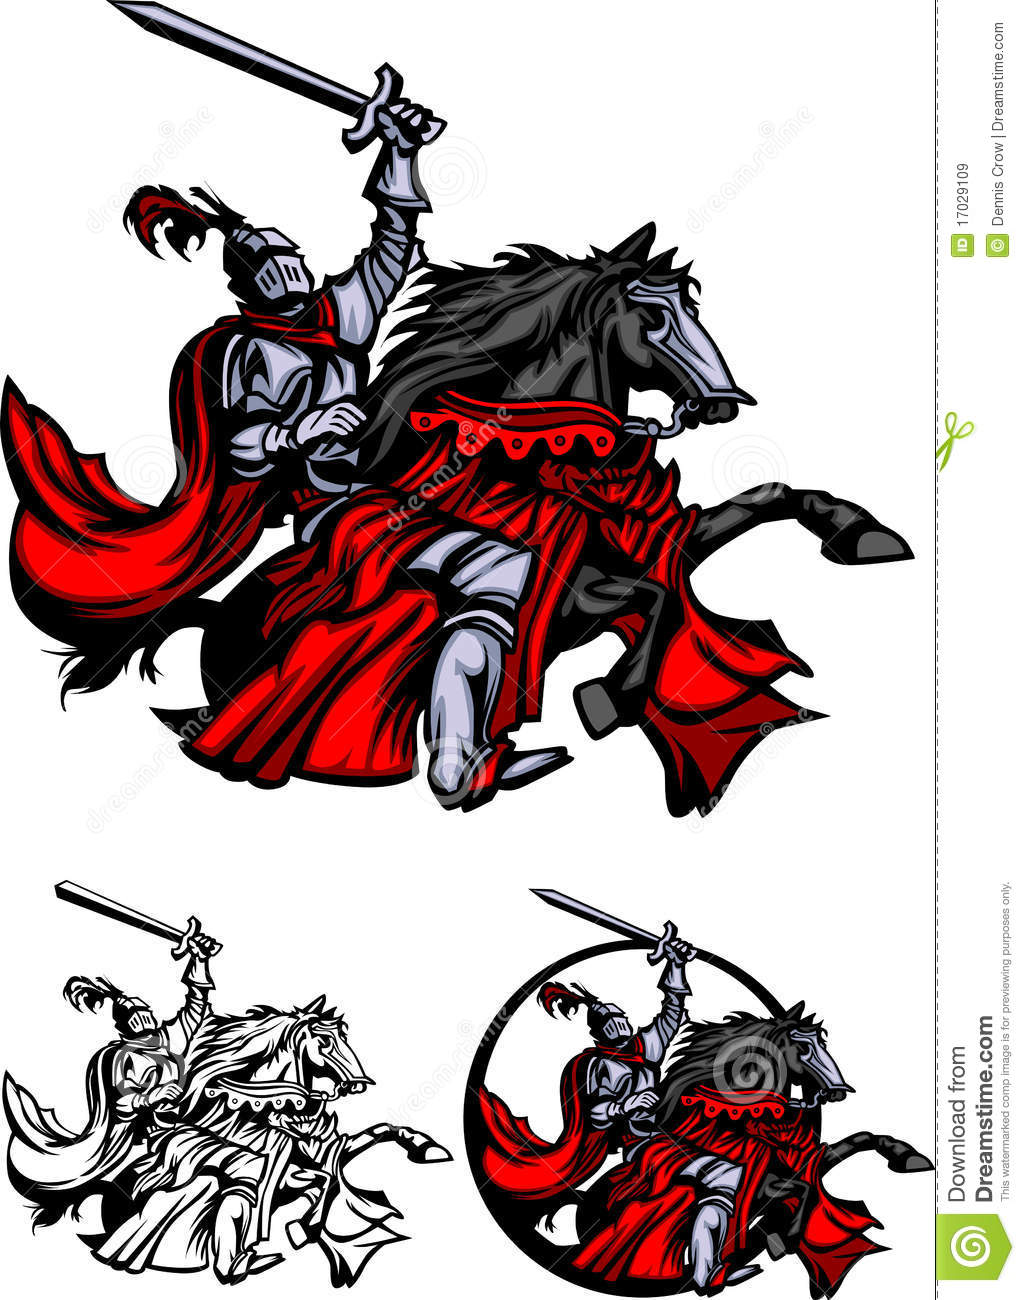 Knights clipart charger. Knight on horse free